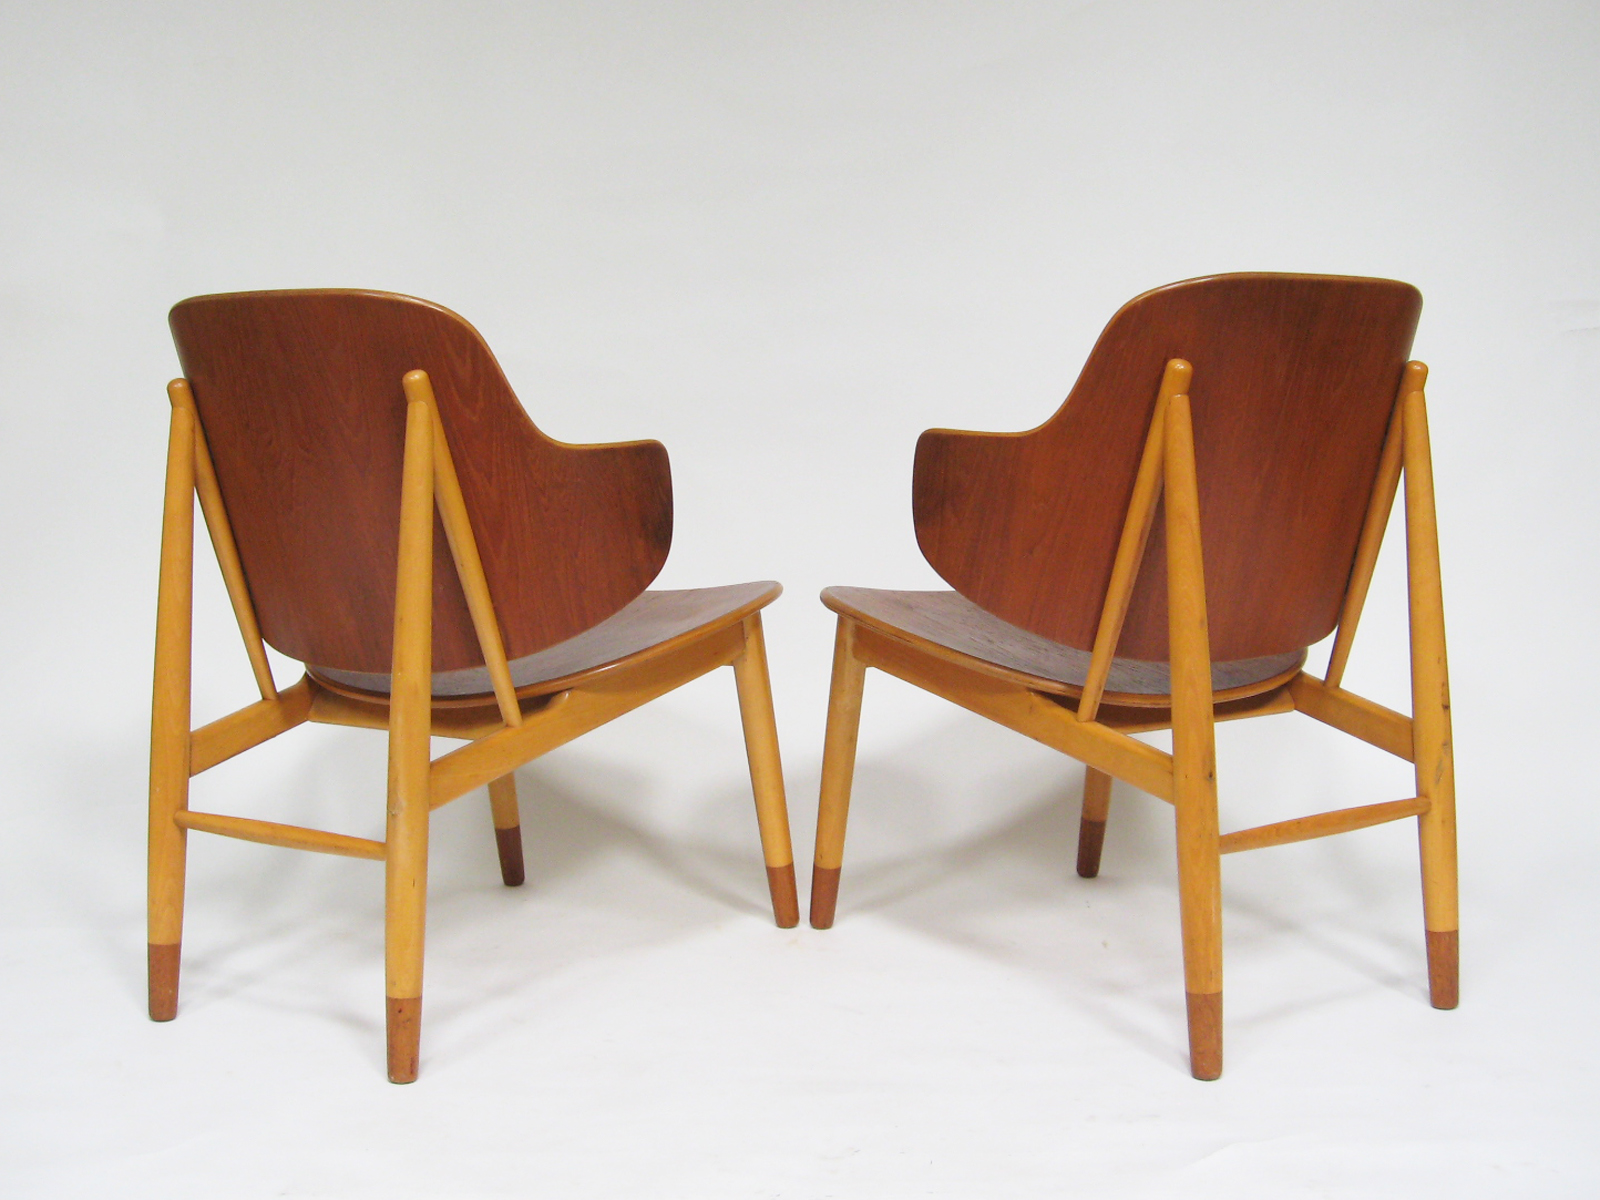 Ib Kofod-Larsen Lounge Chairs